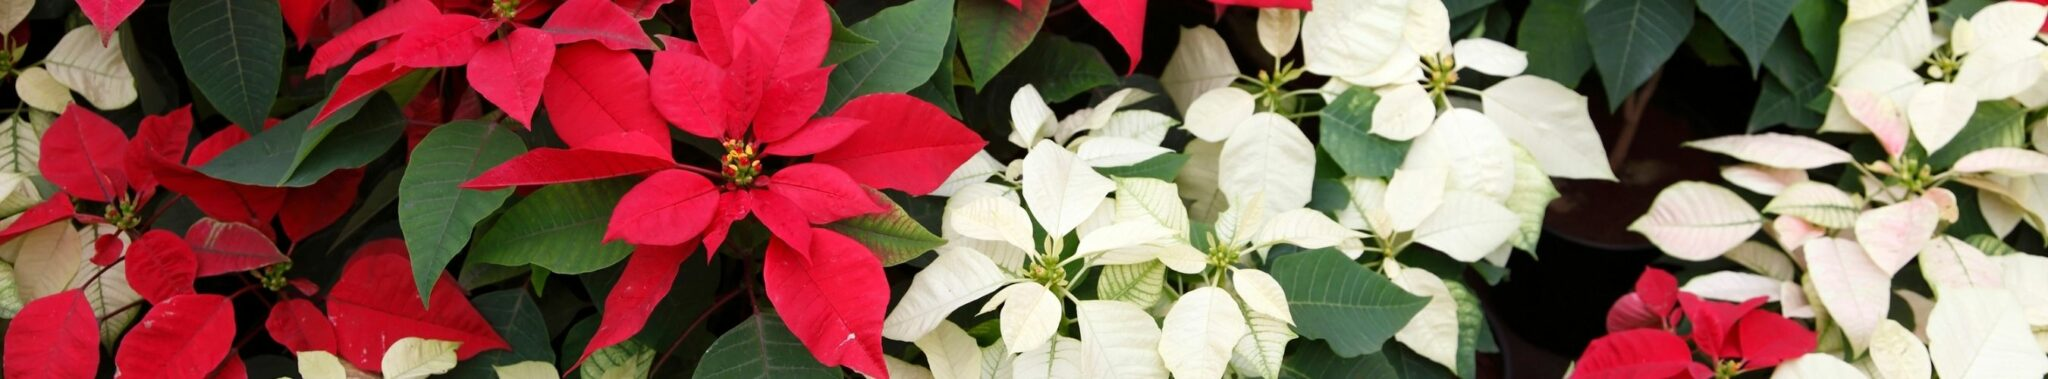 group with lots of poinsettias red and white christmas flowers